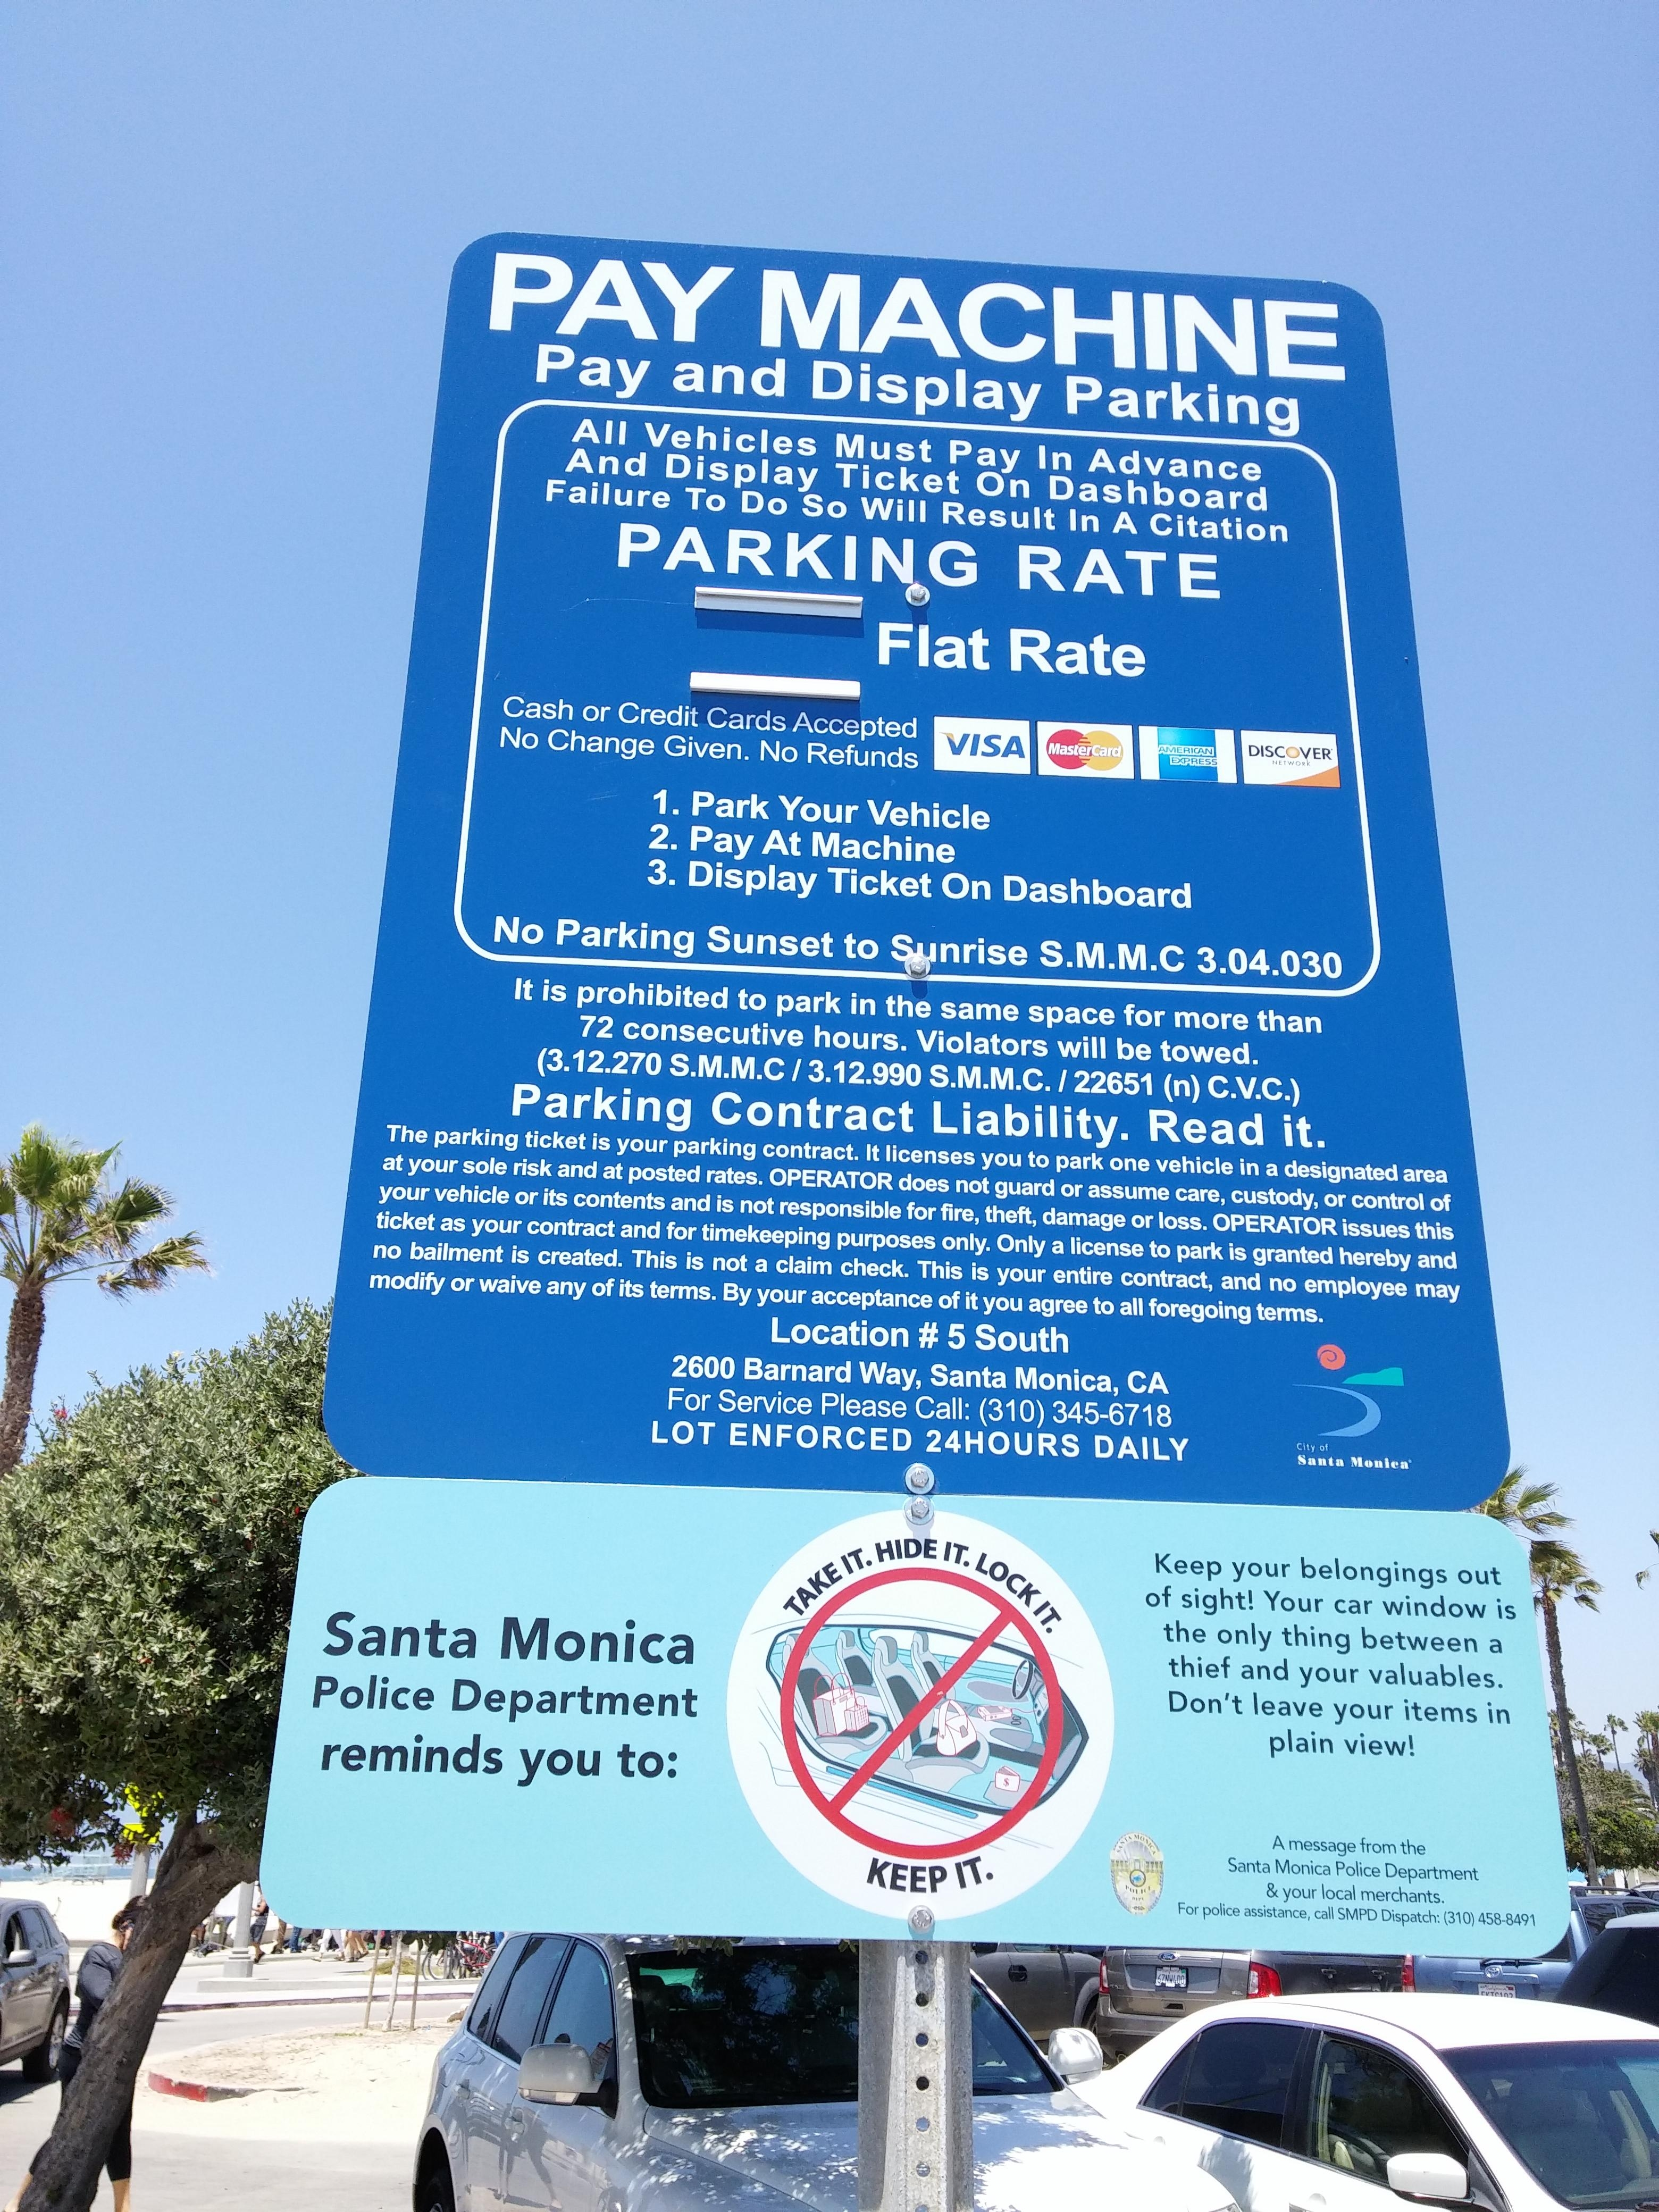 Lot 5 South Parking in Santa Monica